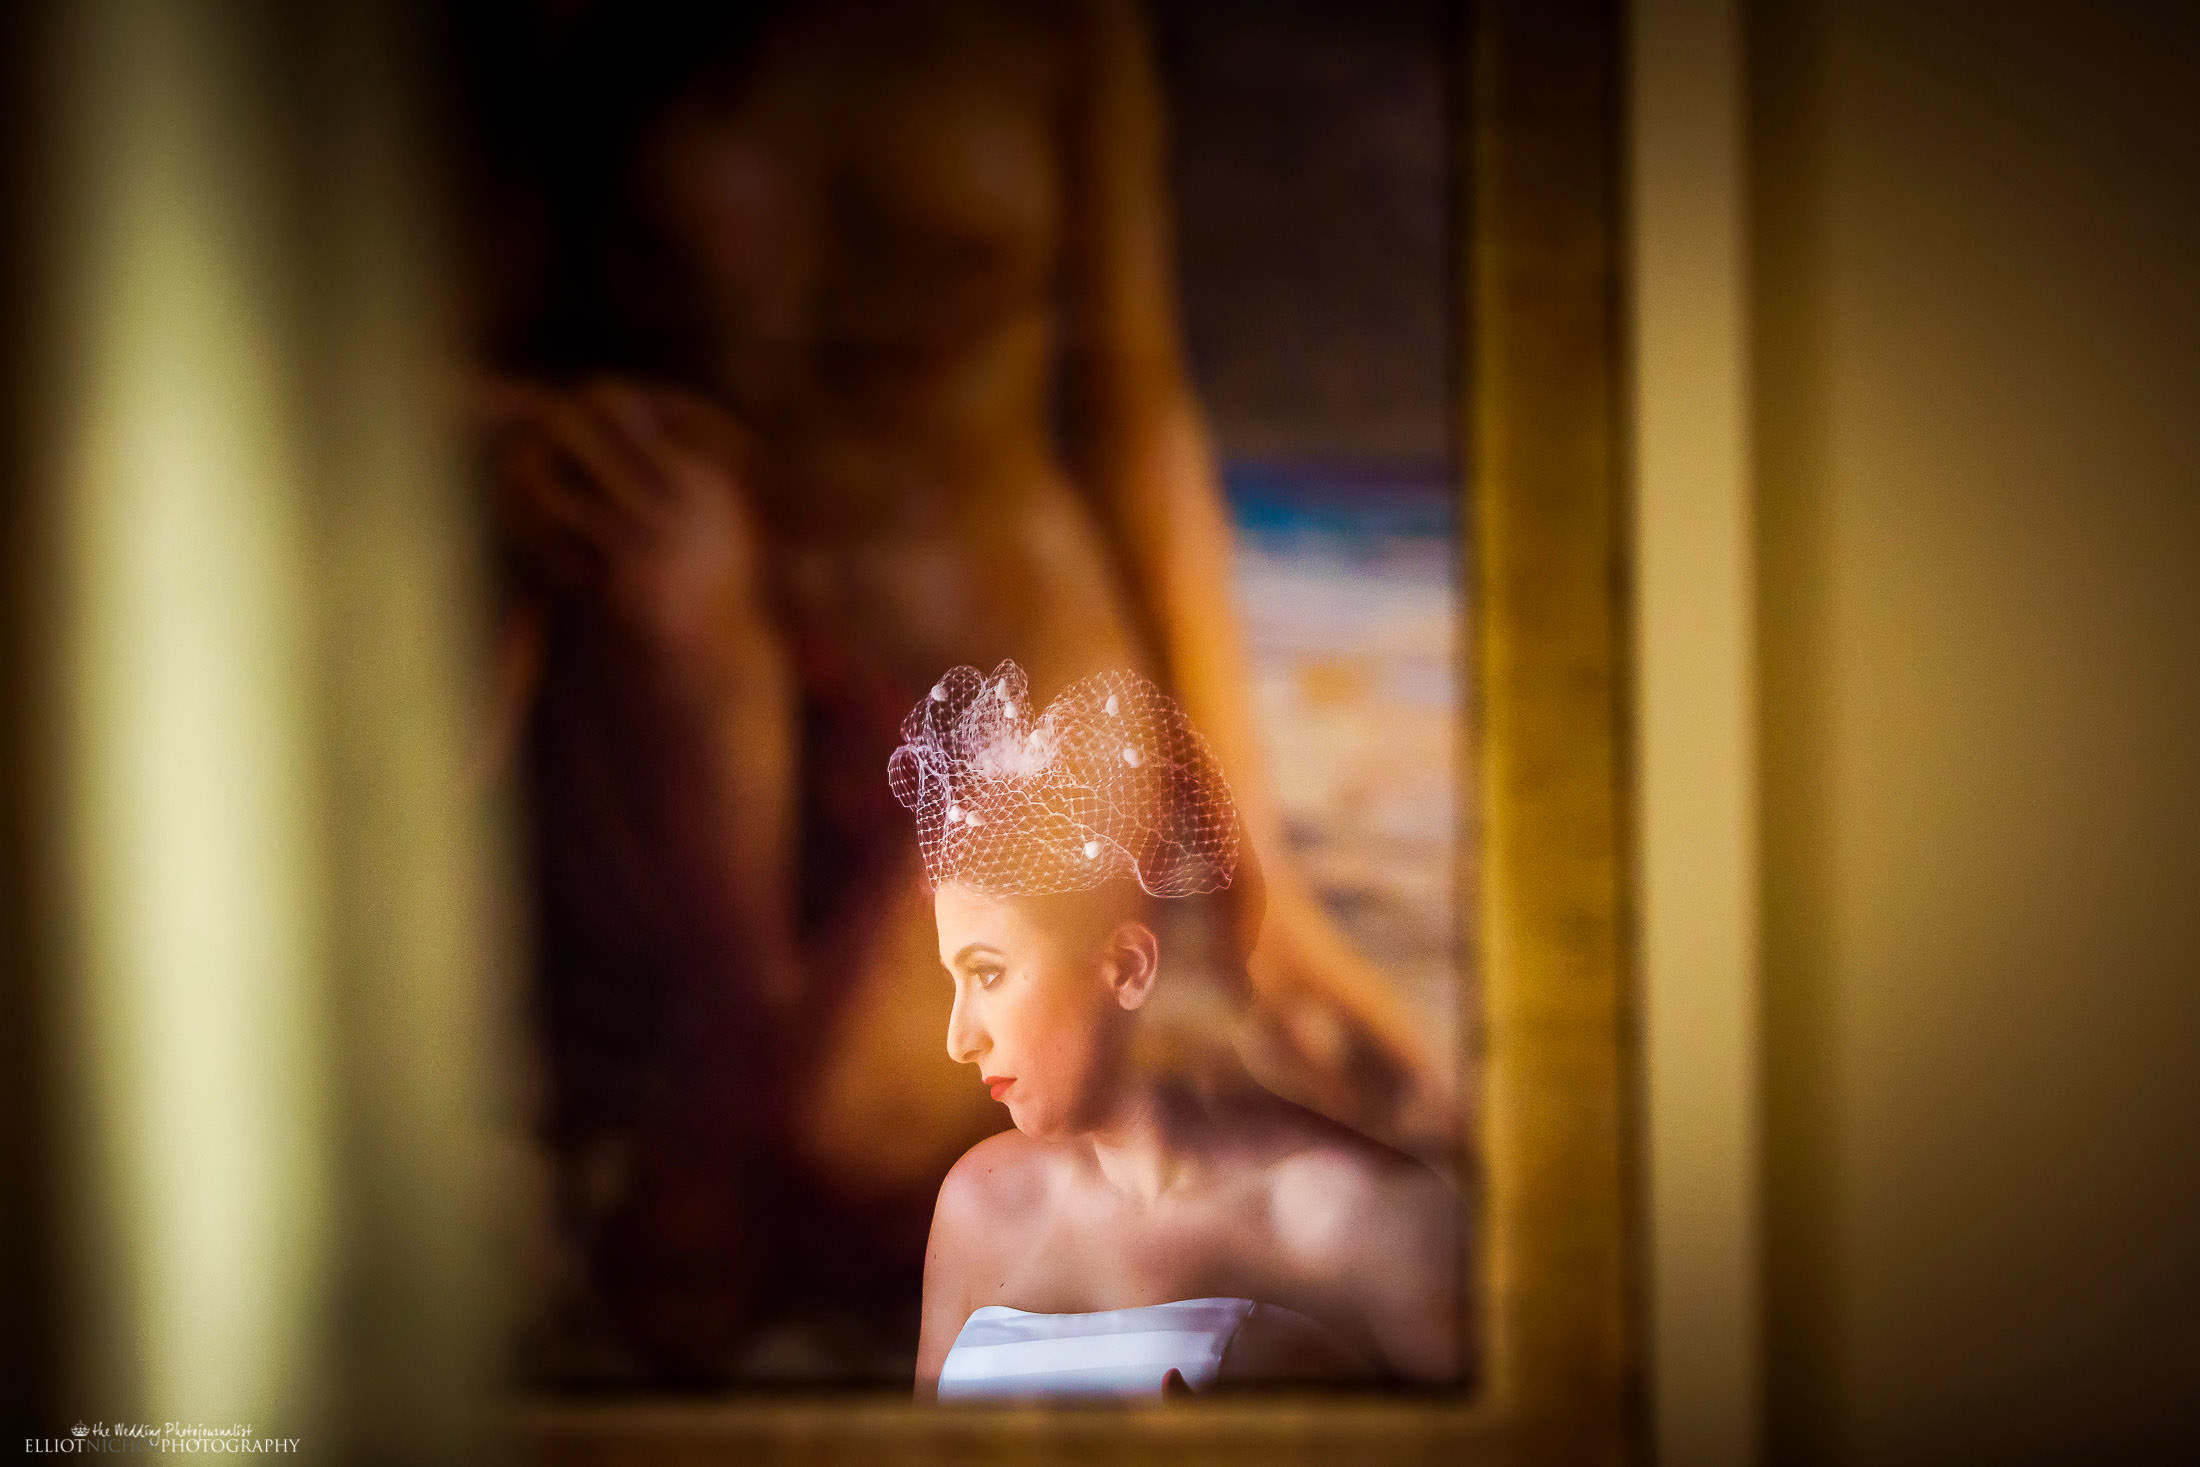 Reflection of bride in framed painting. Photo by Elliot Nichol Photography.